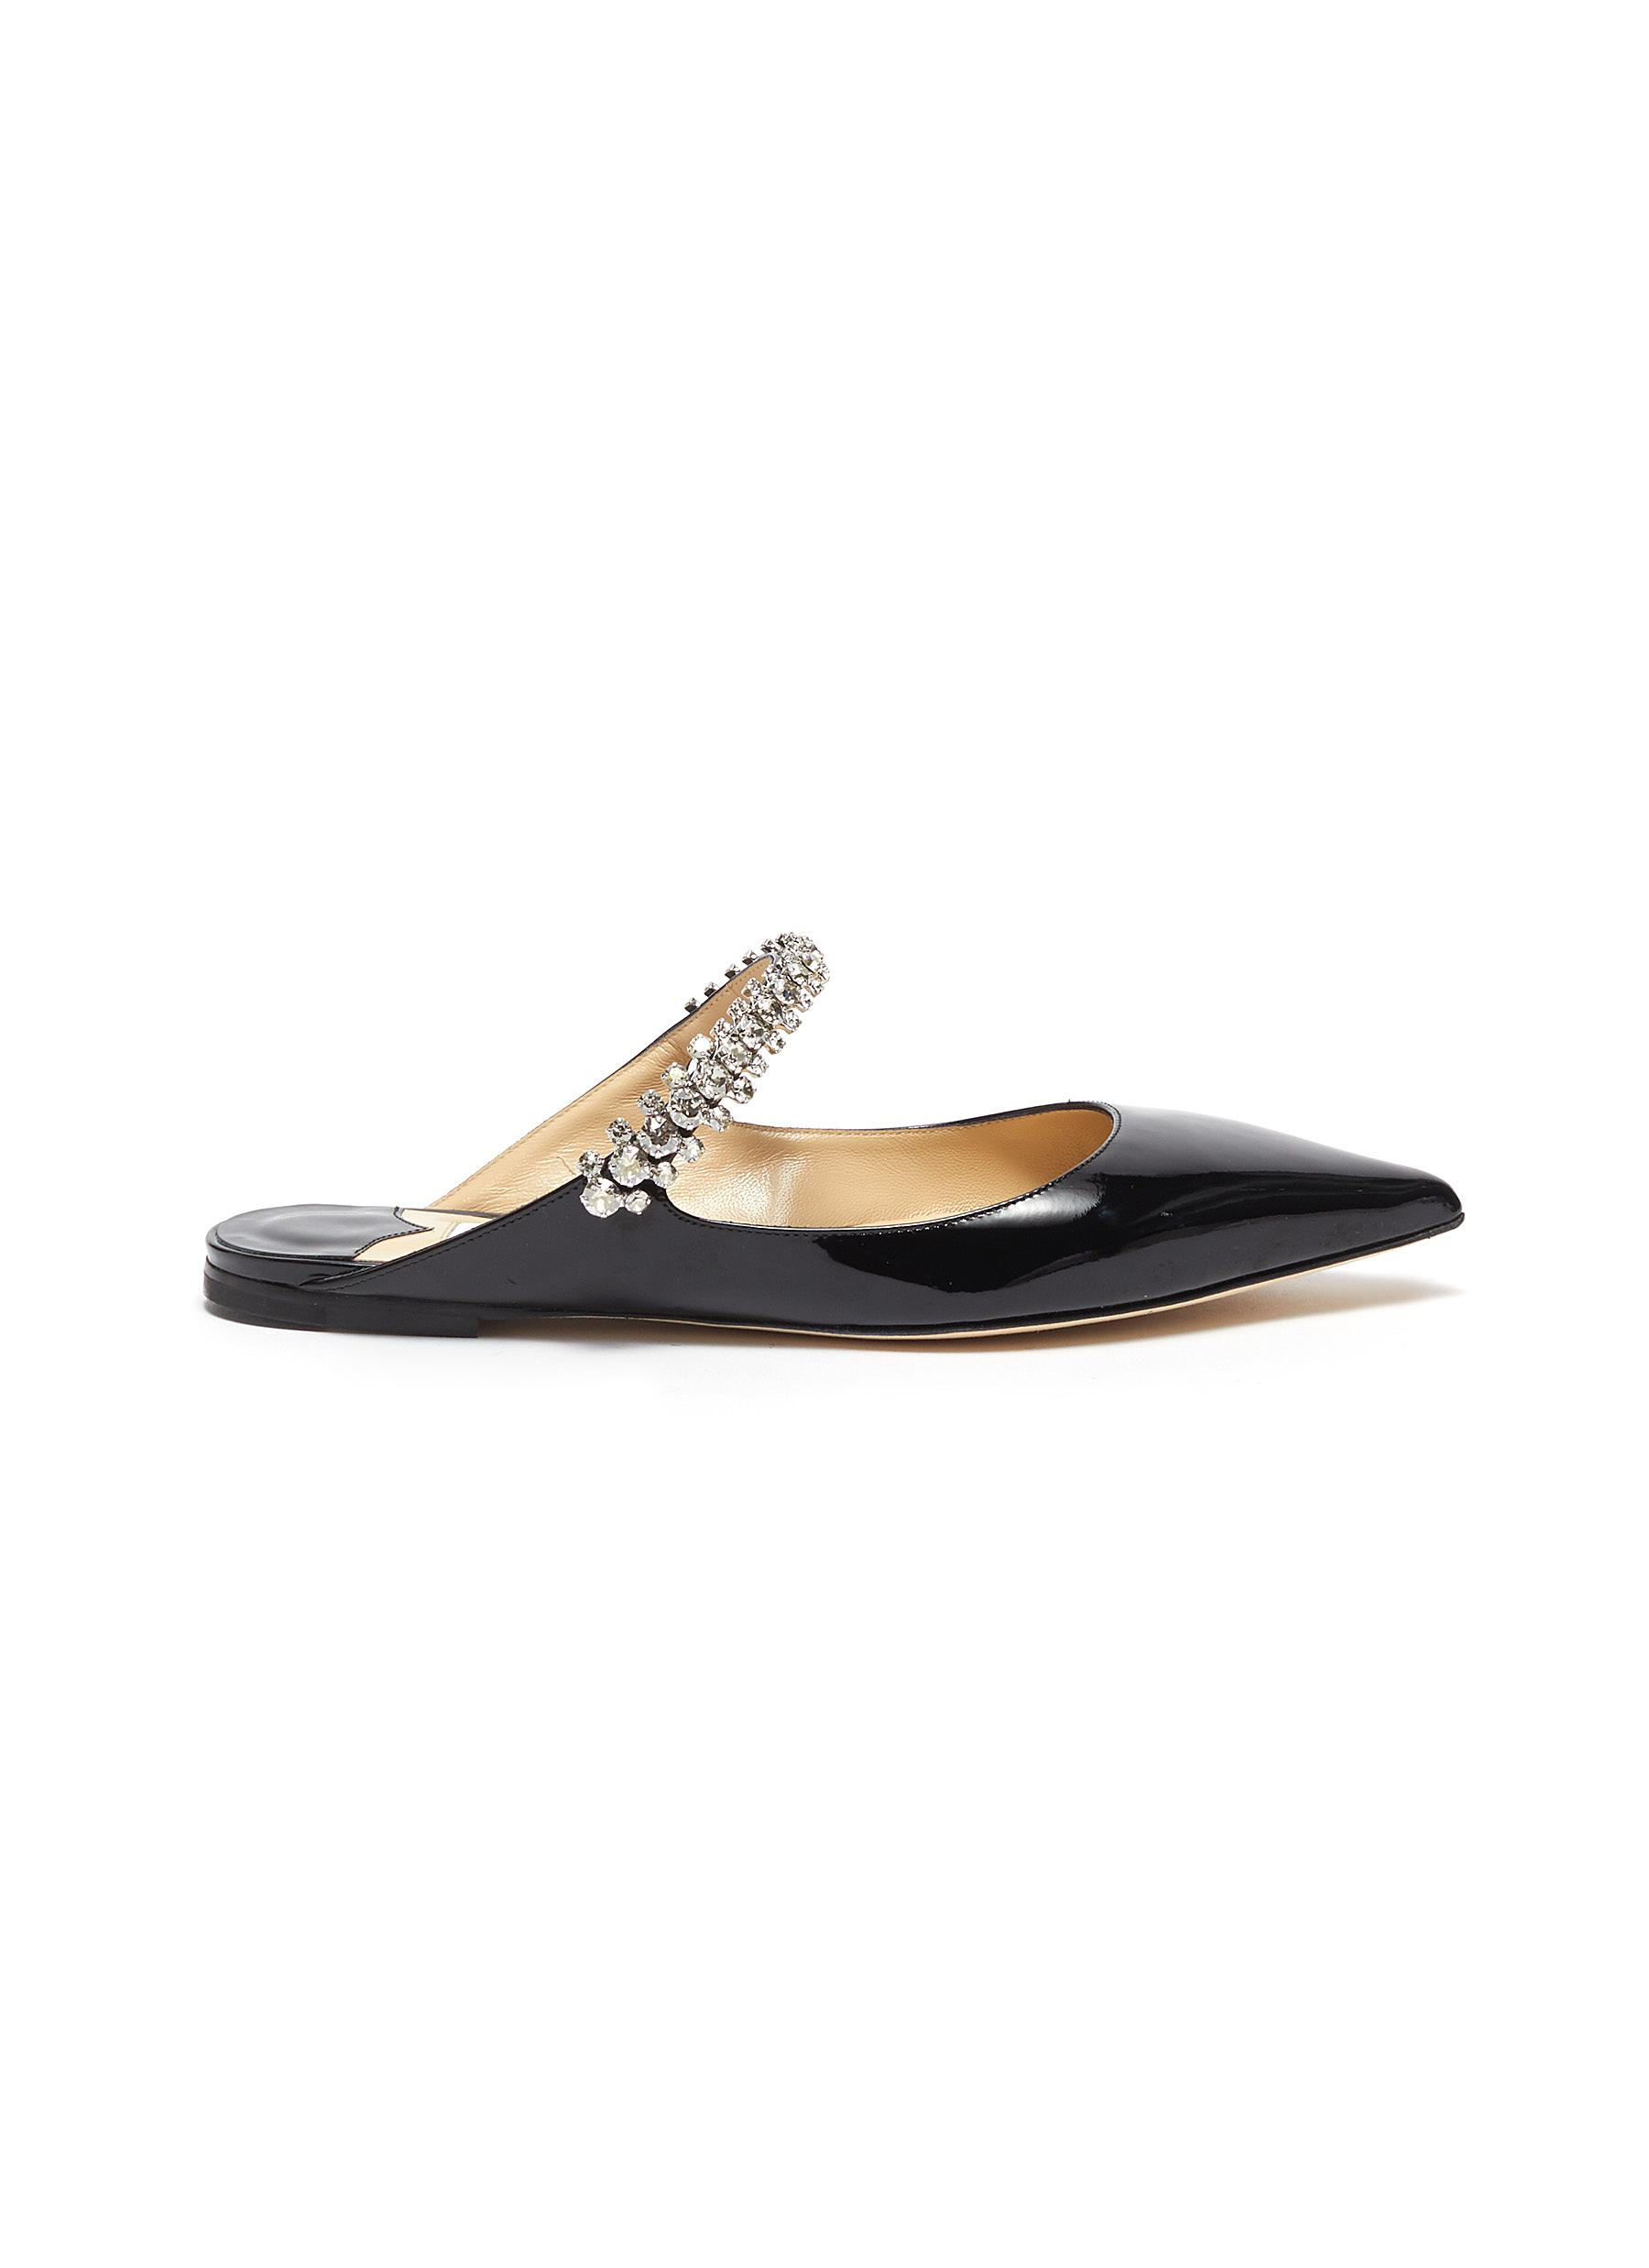 Jimmy Choo Flats Bing Flat crystal strap patent leather mules